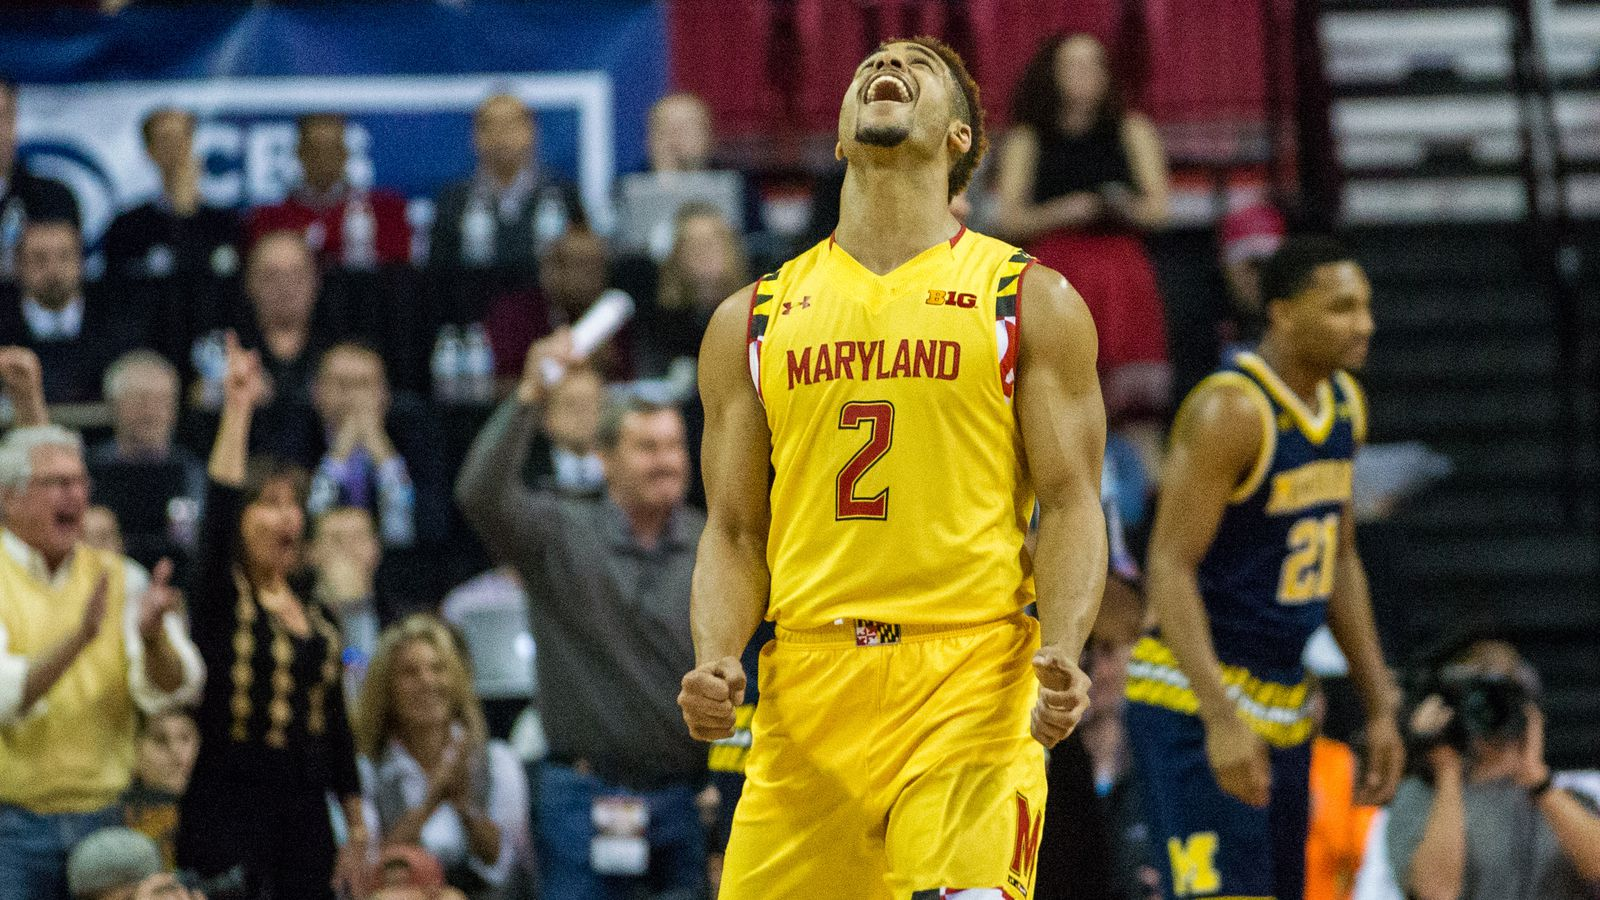 Maryland vs. Michigan final score, with 3 things to know from the Terps' 86-82 win - Testudo Times